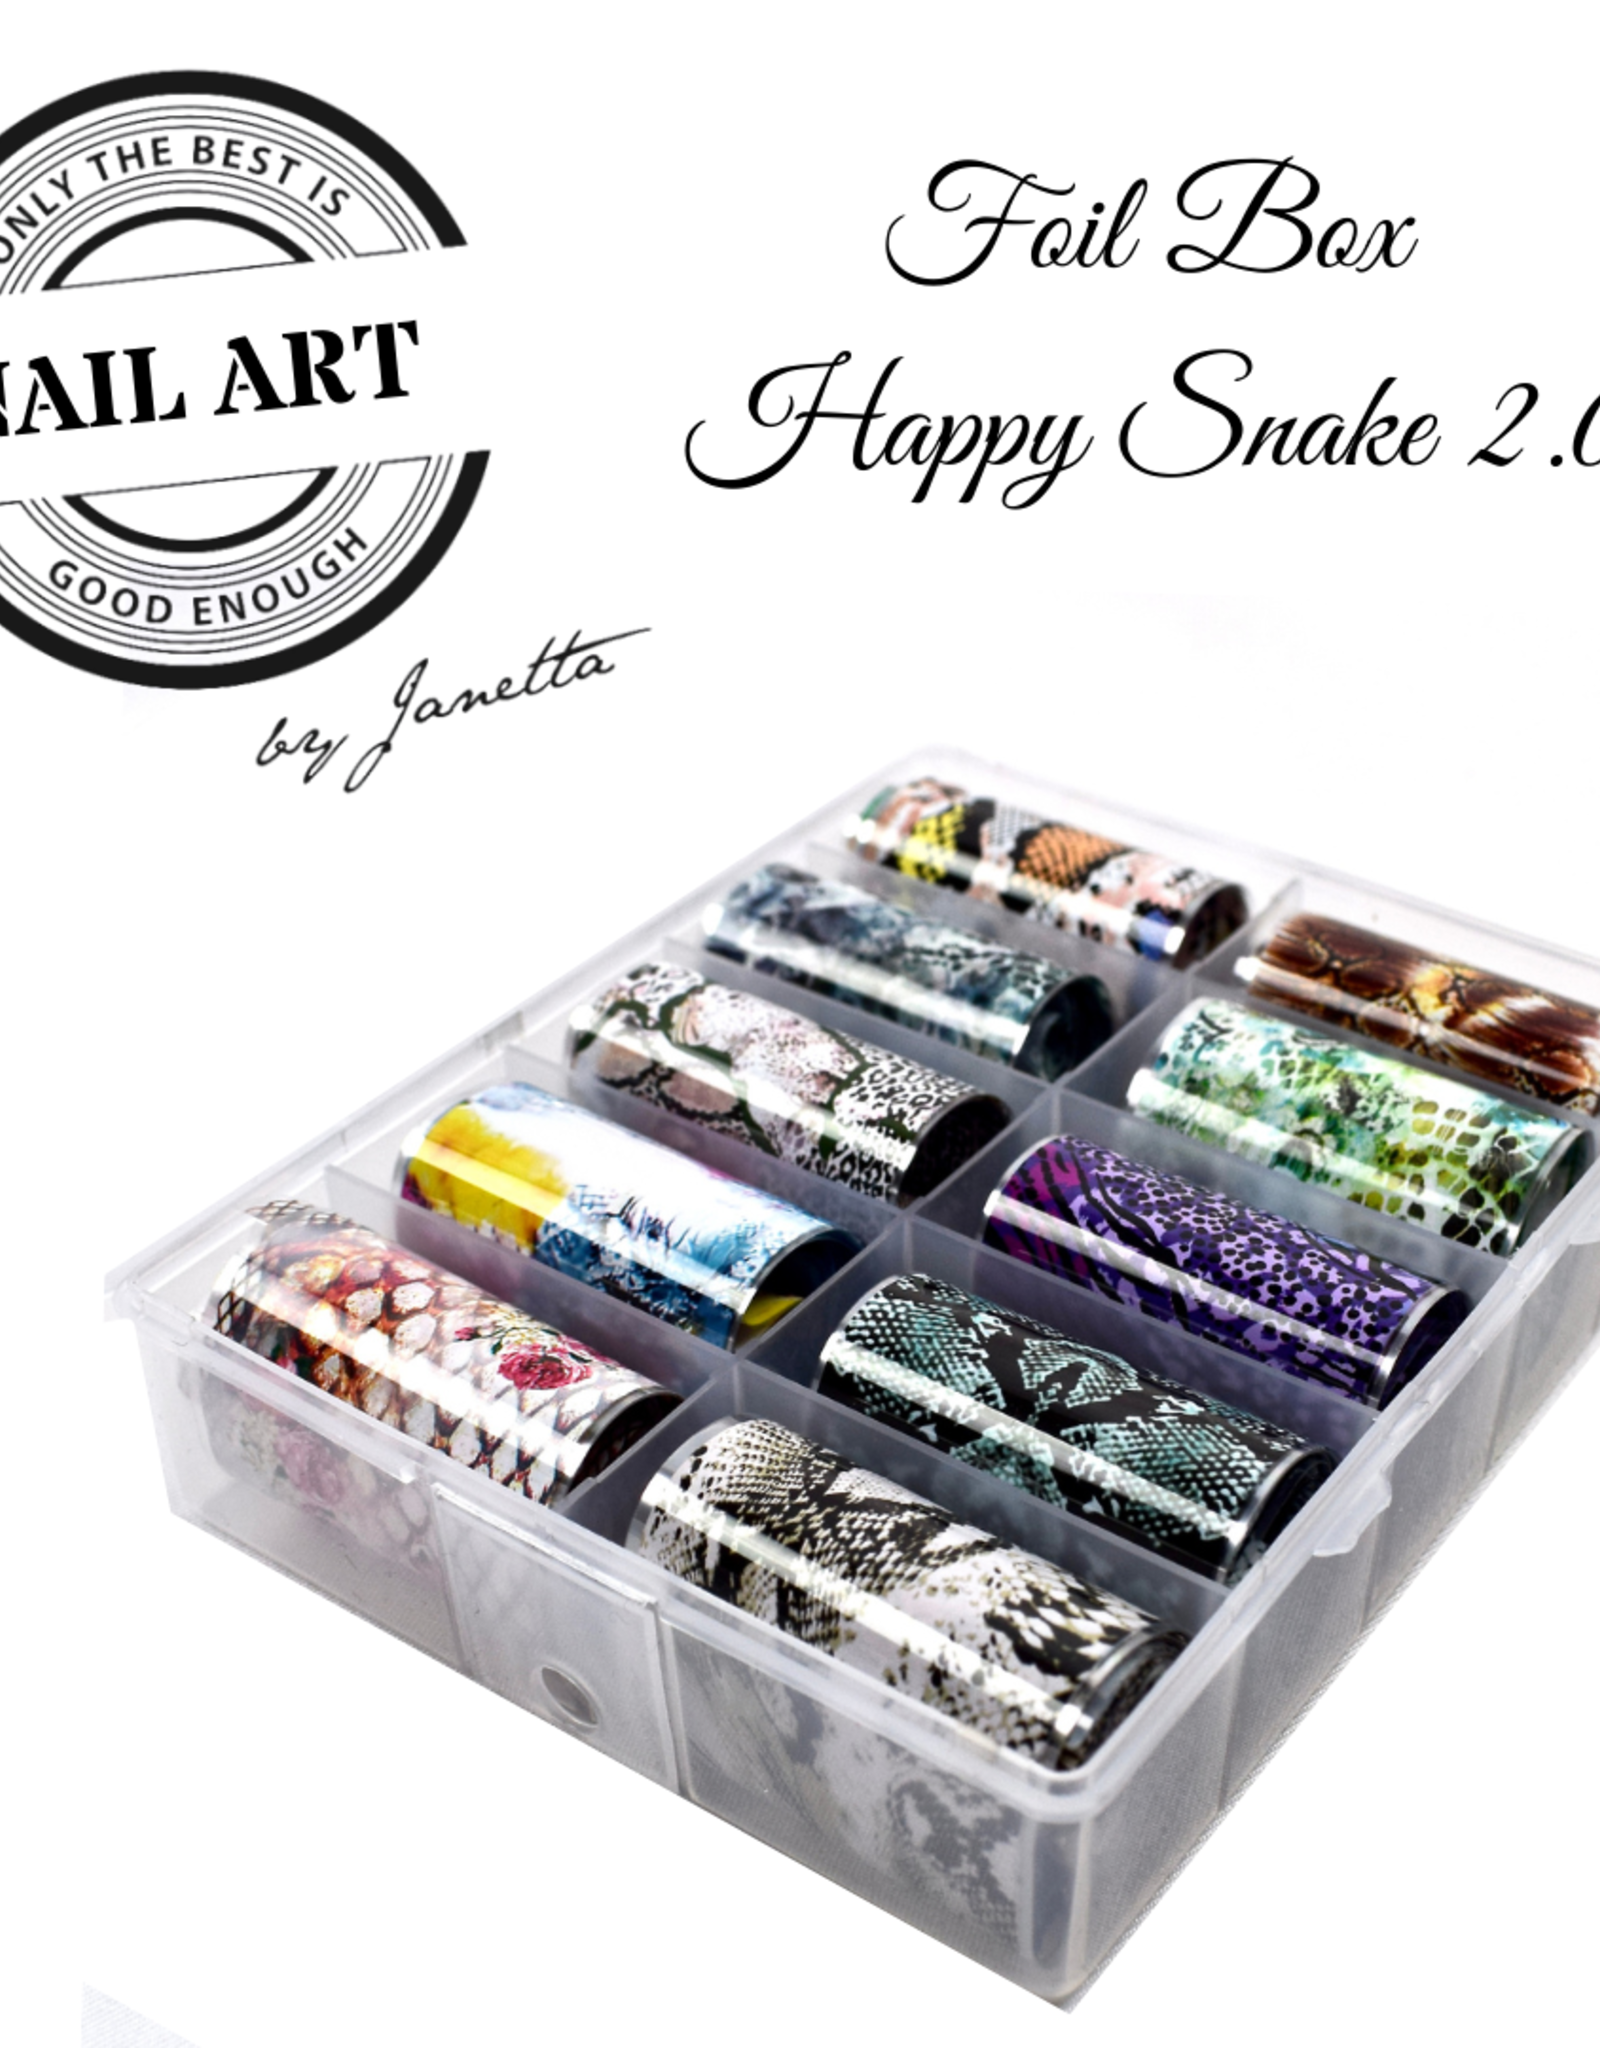 Urban Nails Foilbox Happy snake 2.0